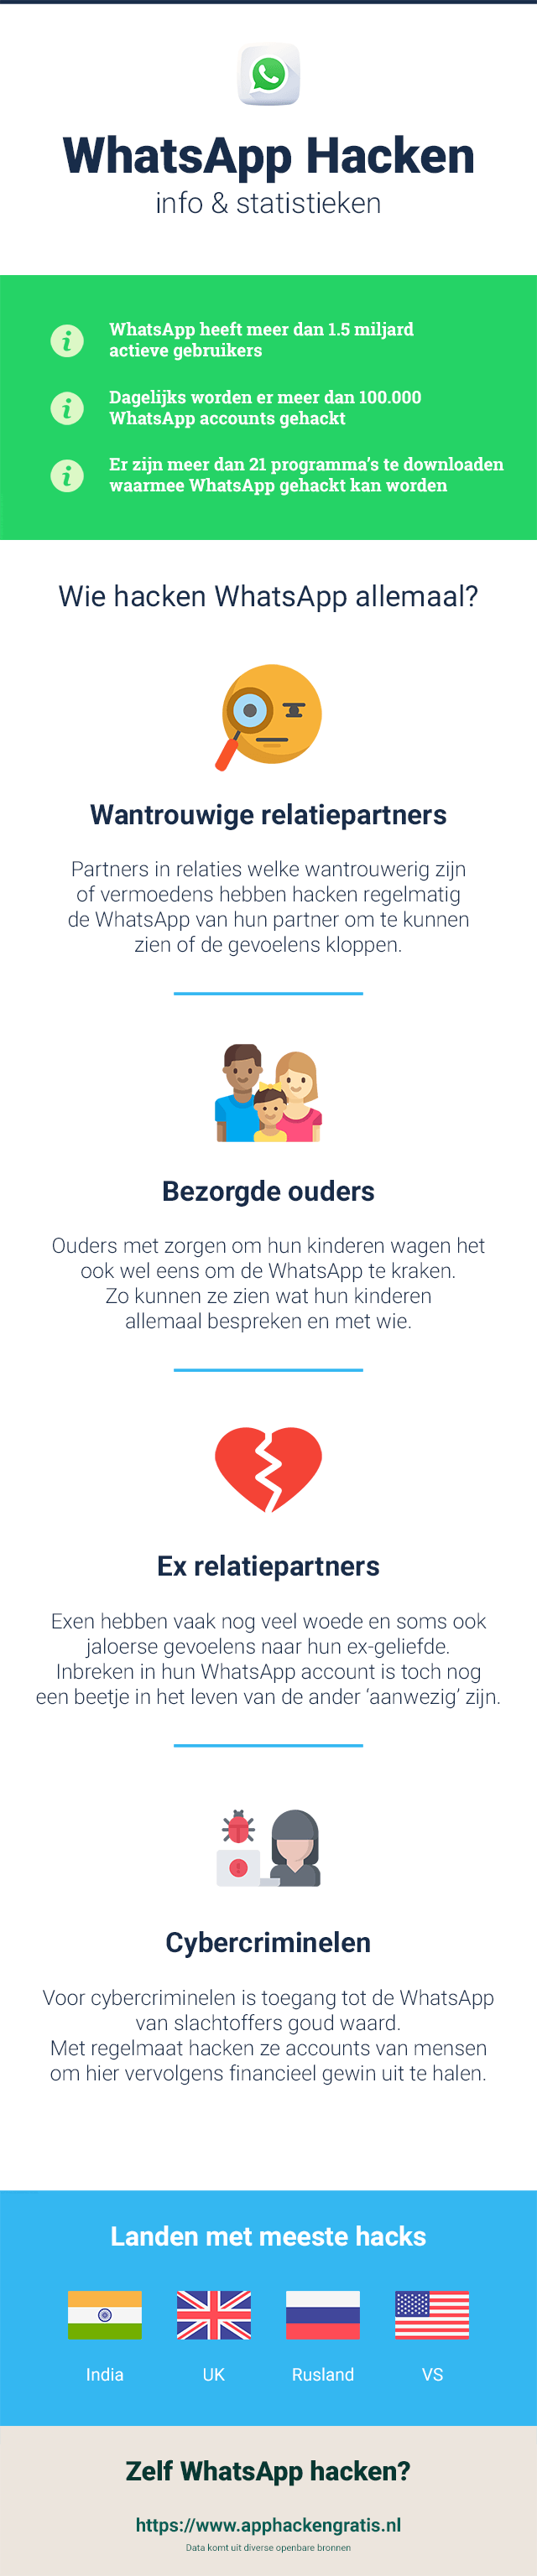 Infographic met statistieken over WhatsApp hacken